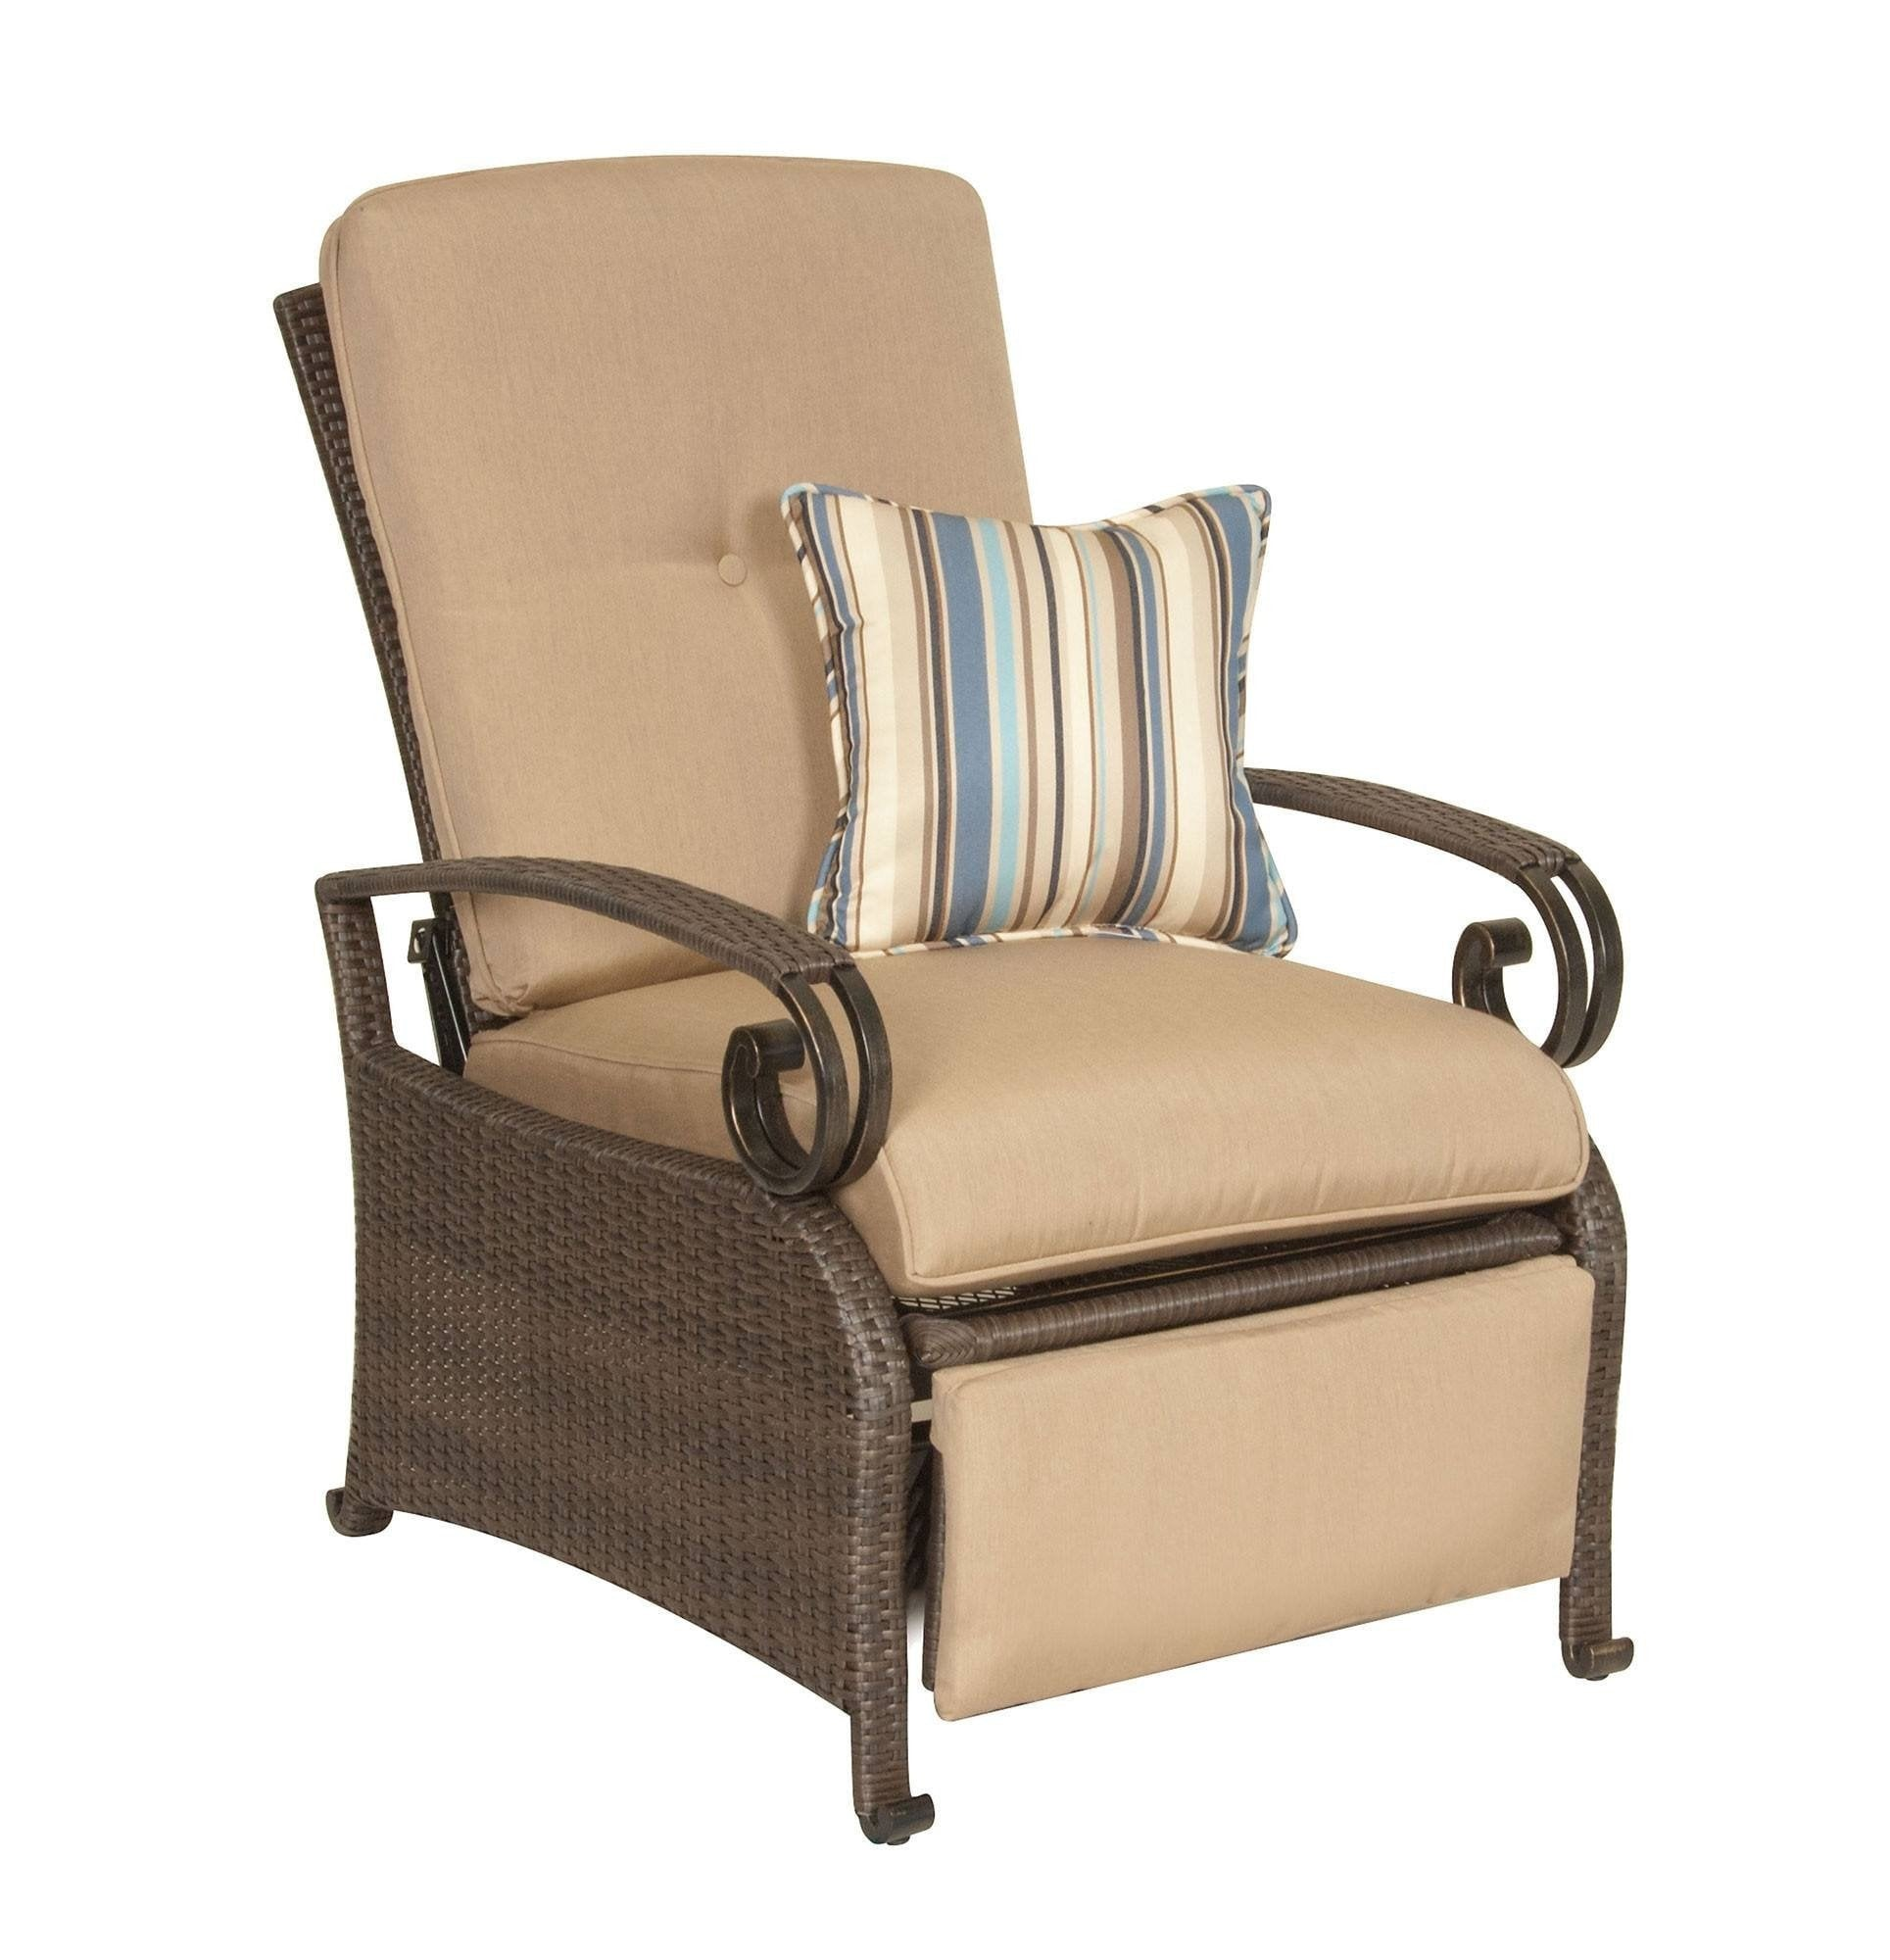 Recliner - Lake Como Patio Recliner (Khaki Tan)  sc 1 st  La-Z-Boy Outdoor & Outdoor Recliner - La-Z-Boy Outdoor Patio Furniture Wicker Recliner islam-shia.org